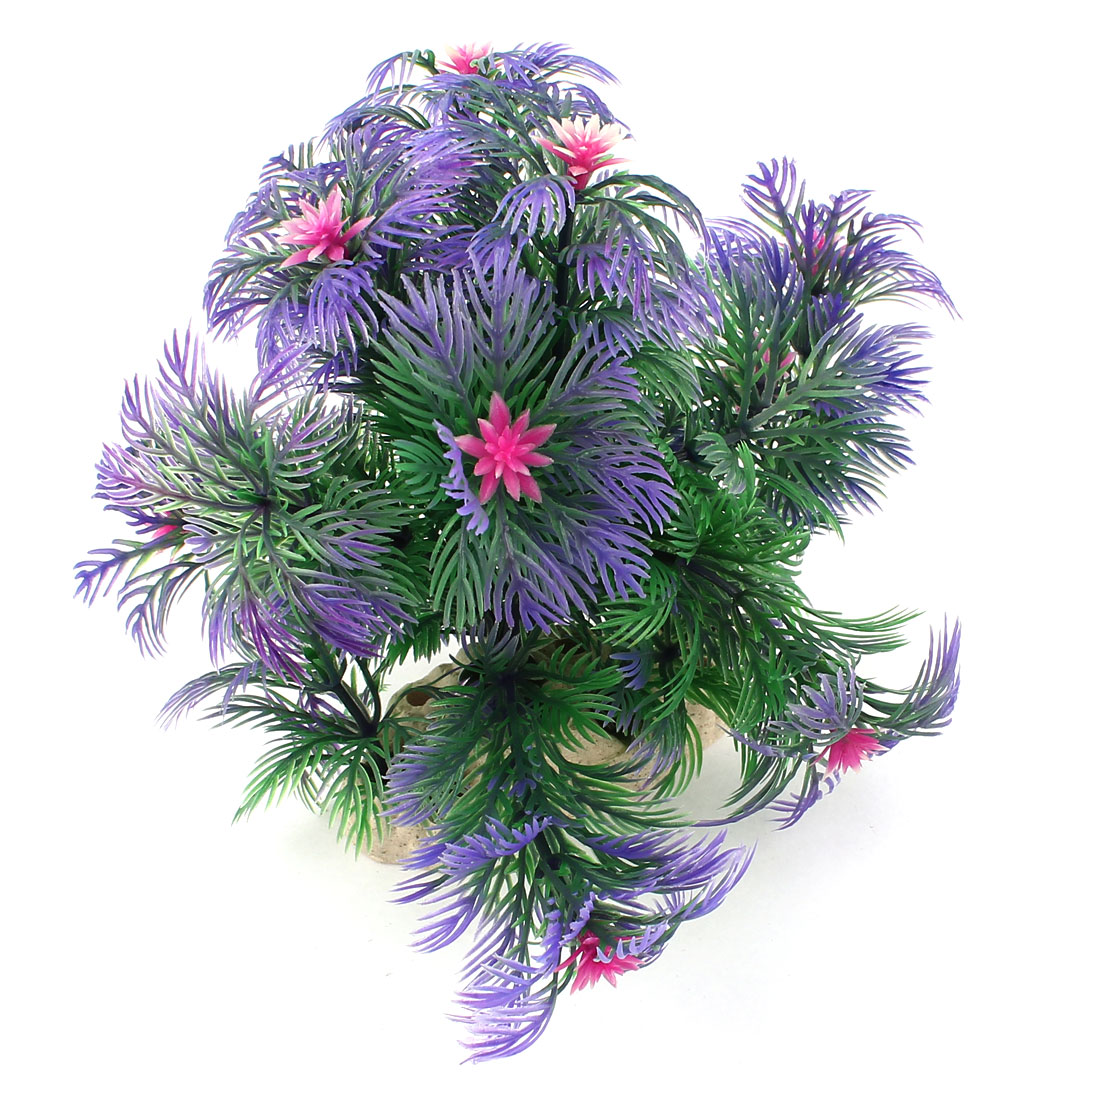 15cm High Artificial Purple Pine Tree Pink Bud Decor for Fish Tank